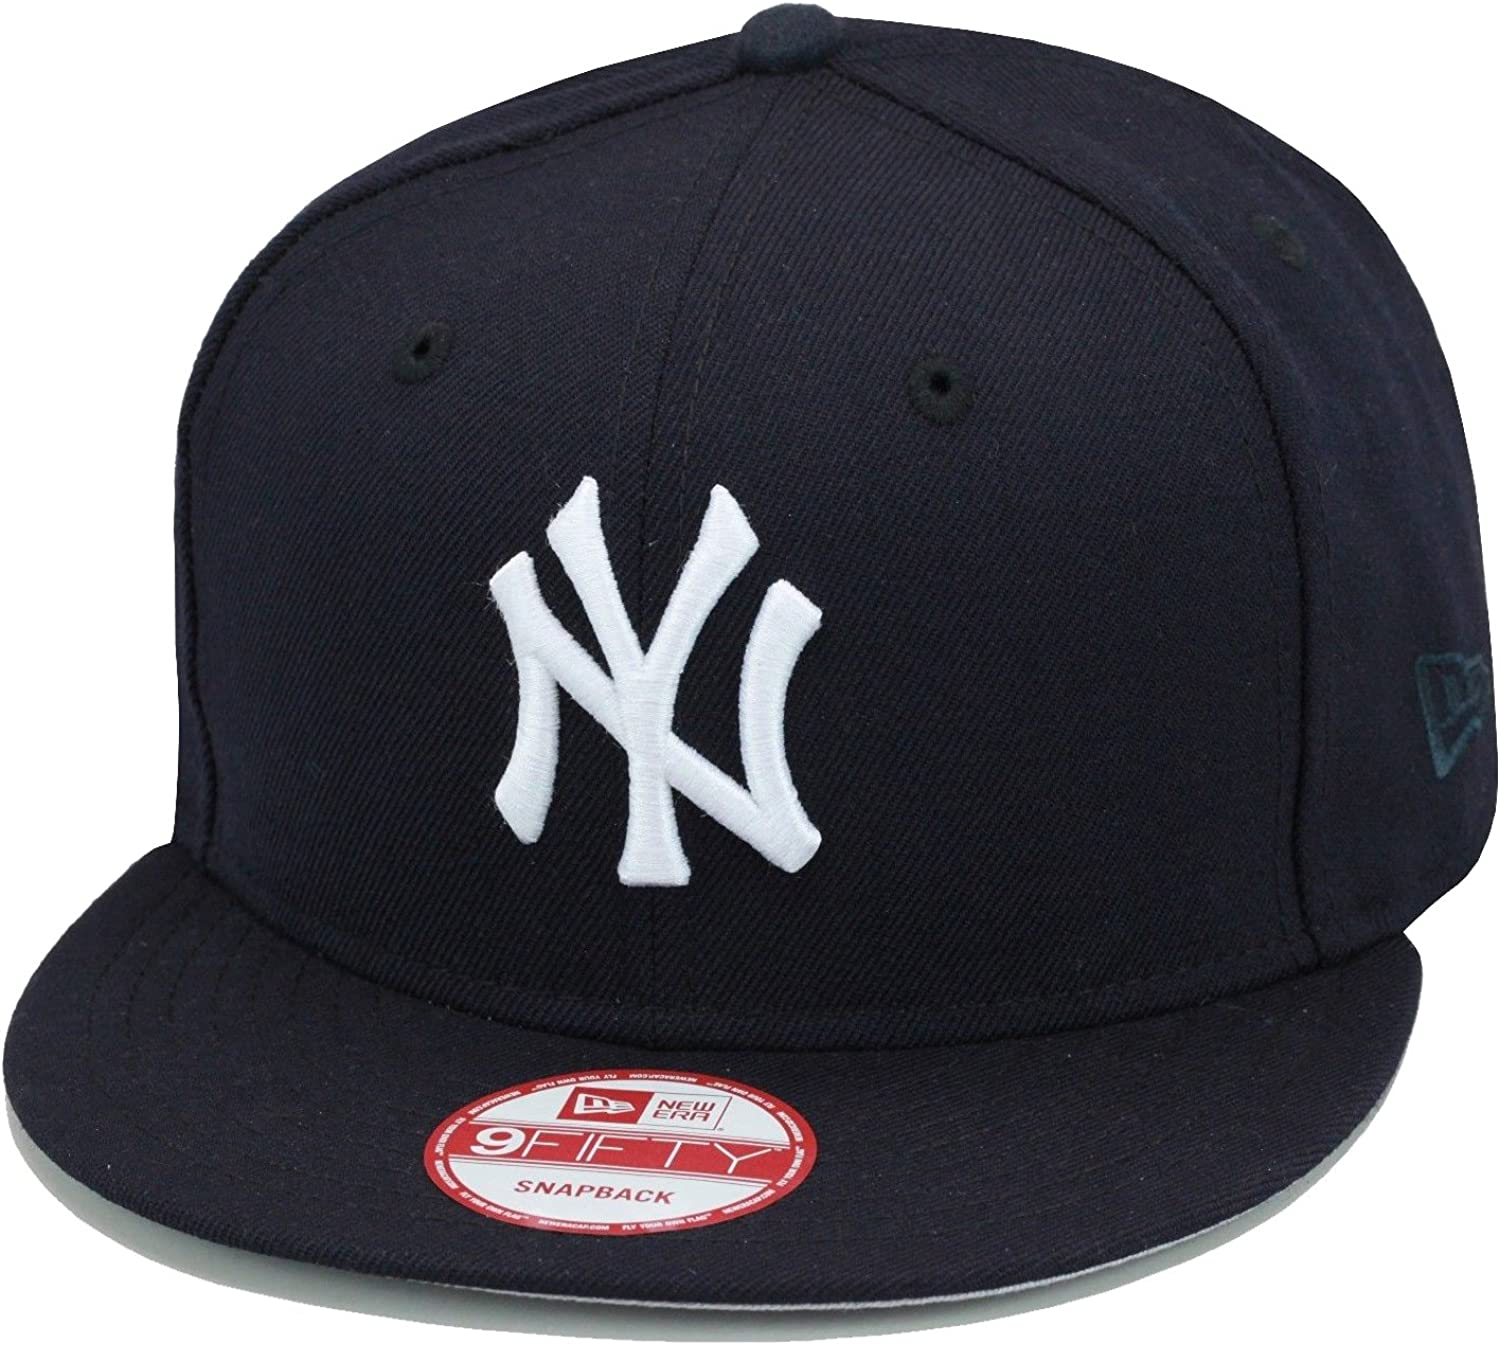 New Era 9fifty New York Yankees Snapback Hat Cap All Navy/White MLB Baseball